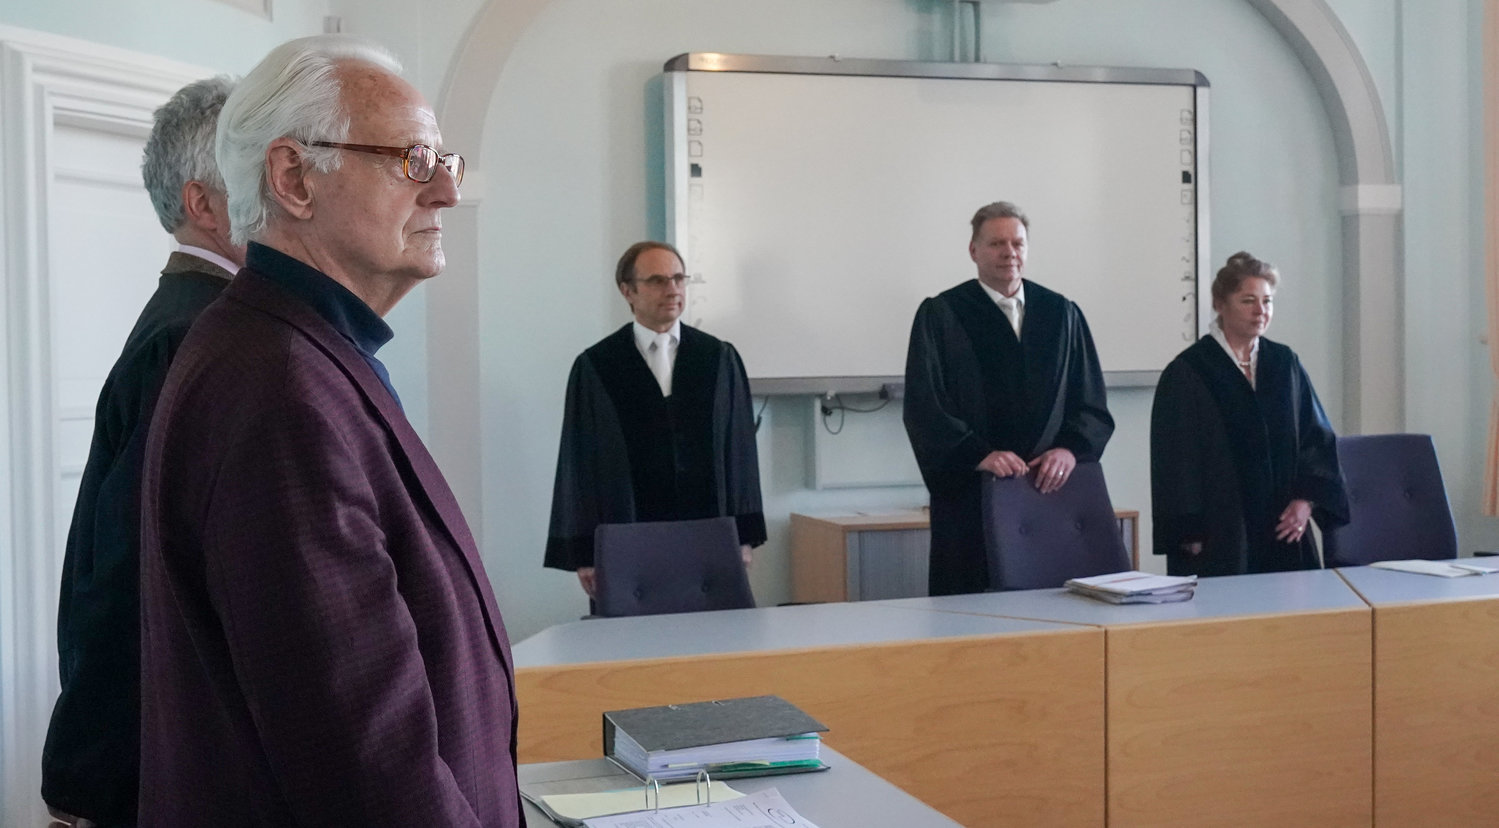 Plaintiff Michael Dietrich Duellmann, left, stands in the courtroom of the Higher Regional Court in Naumburg, in a hearing about the removal of the Judensau on the Wittenberg city church, Jan. 21, 2020.